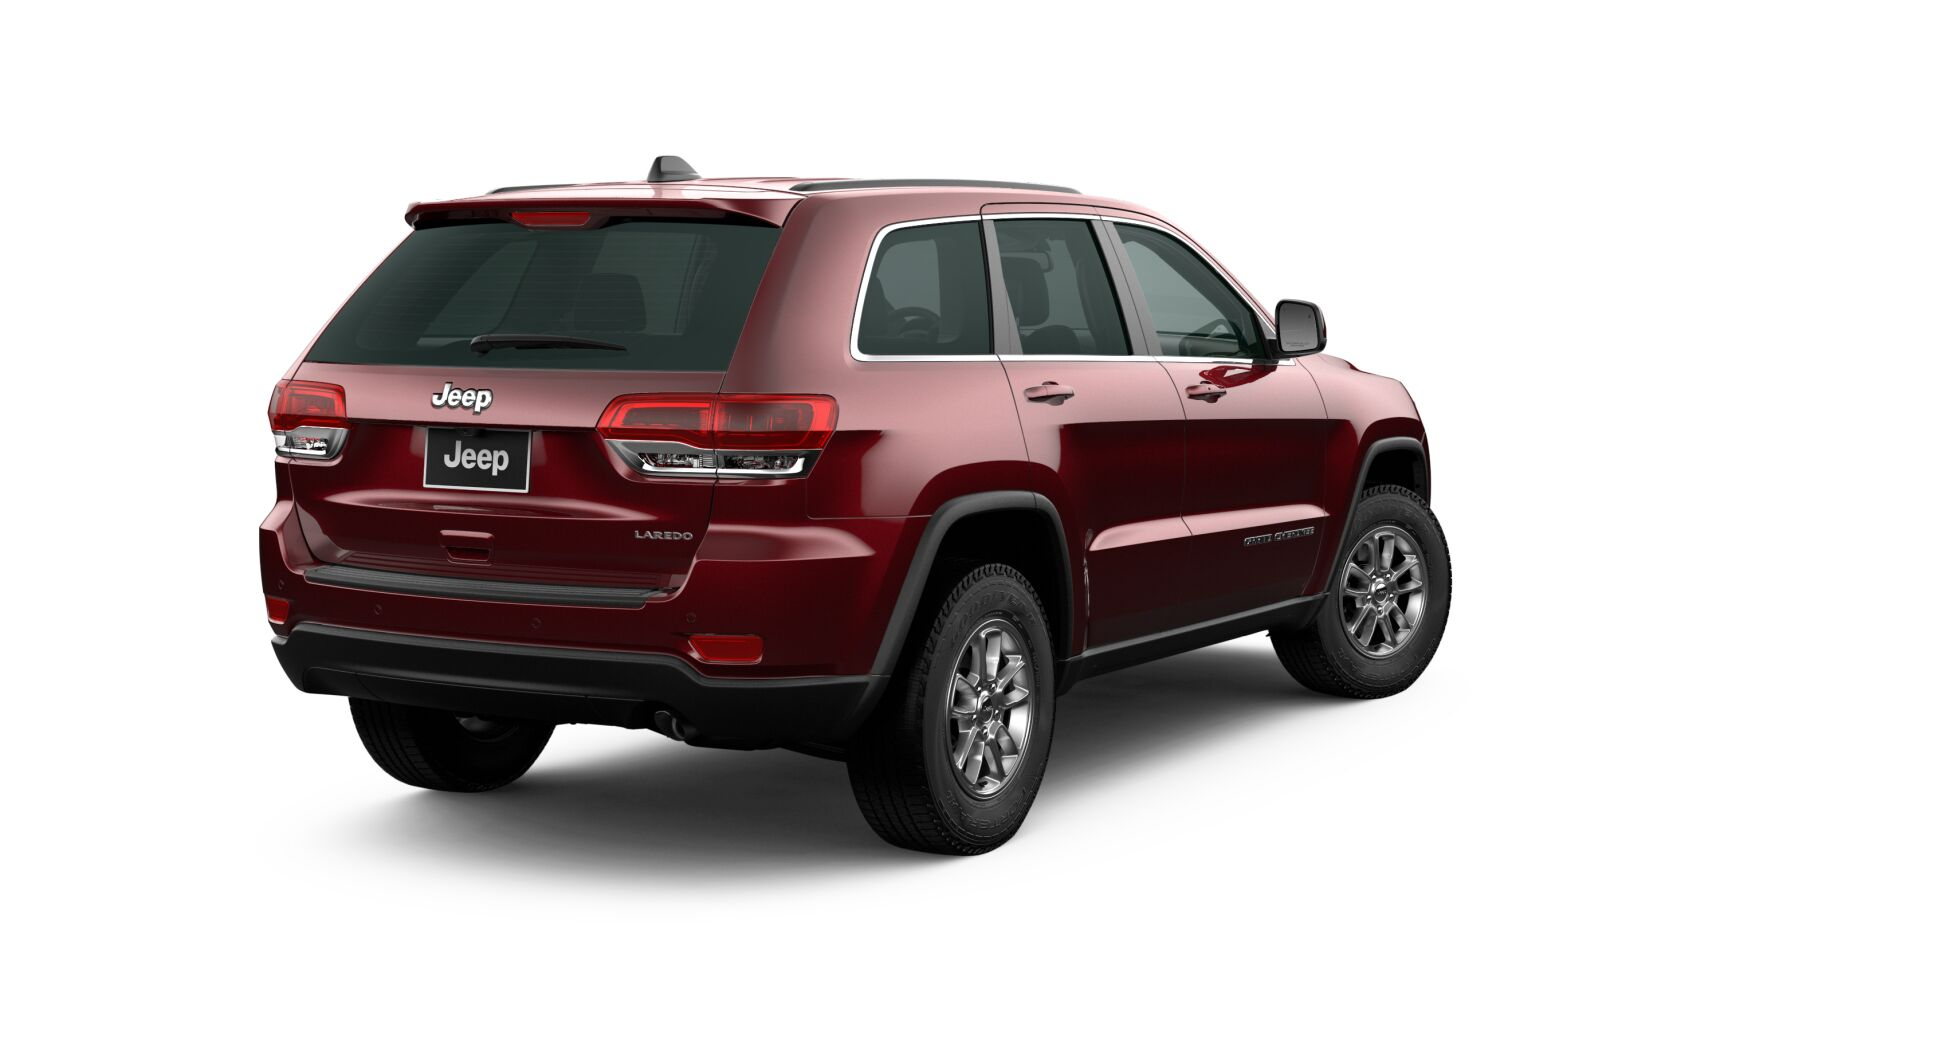 2020 Jeep Grand Cherokee Laredo Rear View Red Exterior Picture